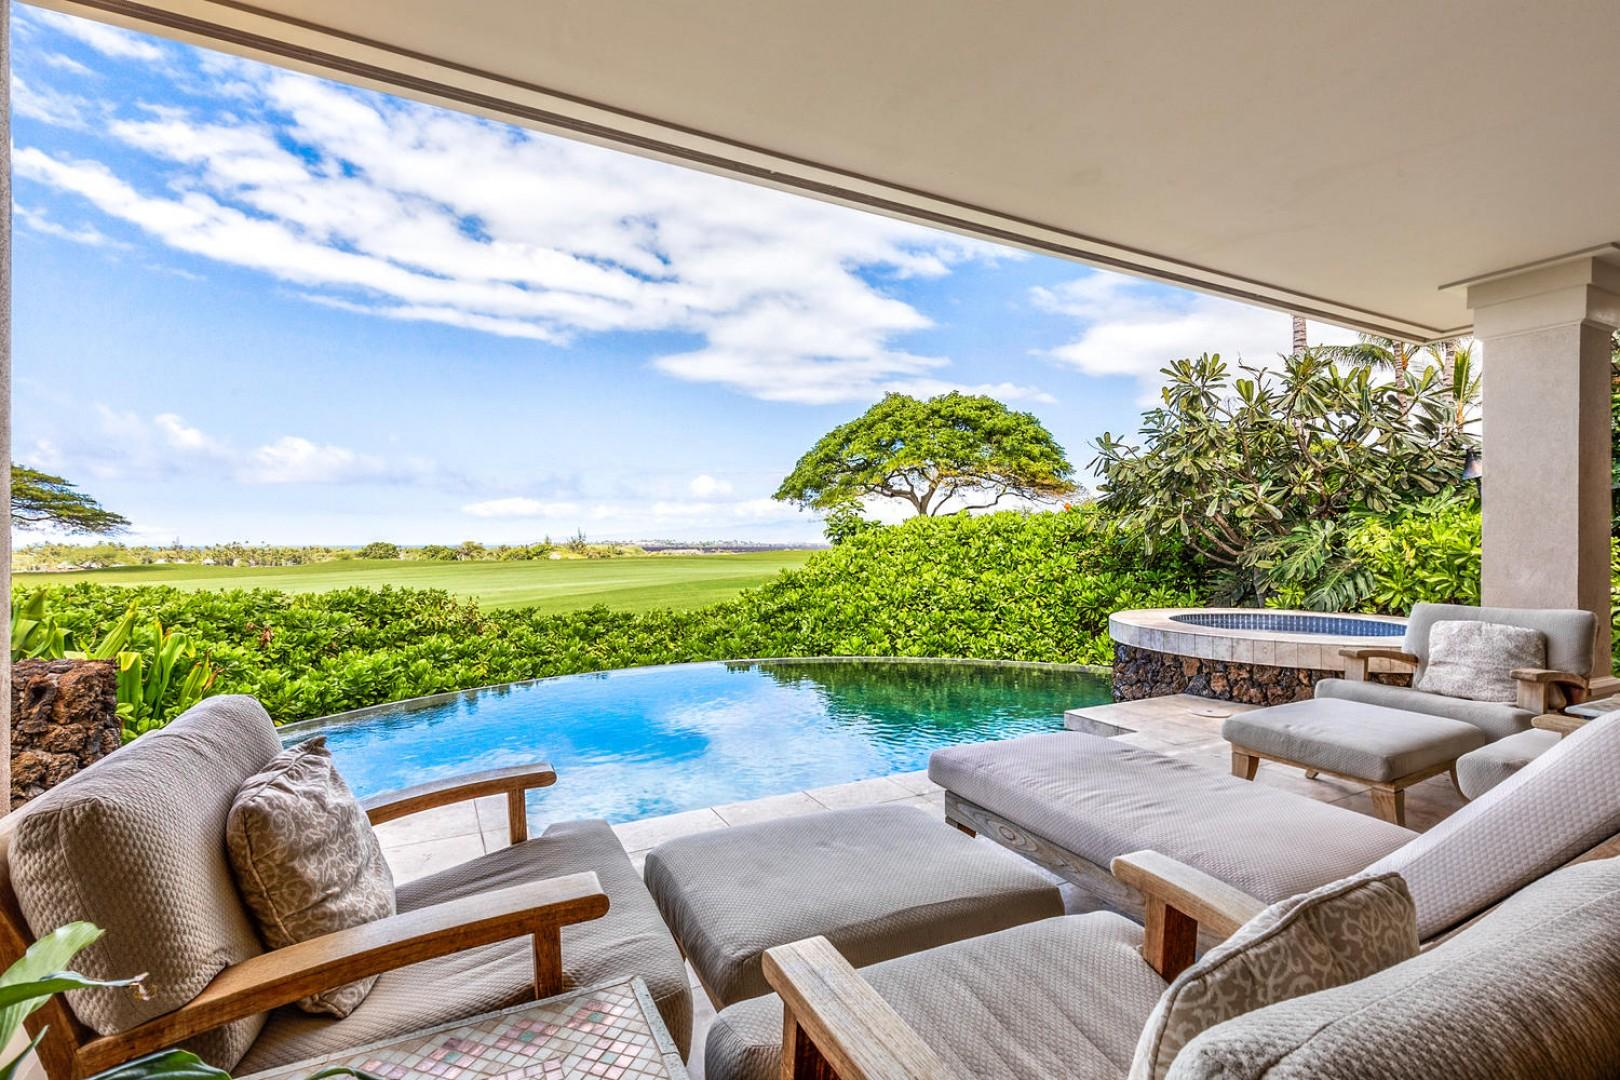 Plush loungers, private pool & spa overlooking 9th hole on Jack Nicklaus golf course.